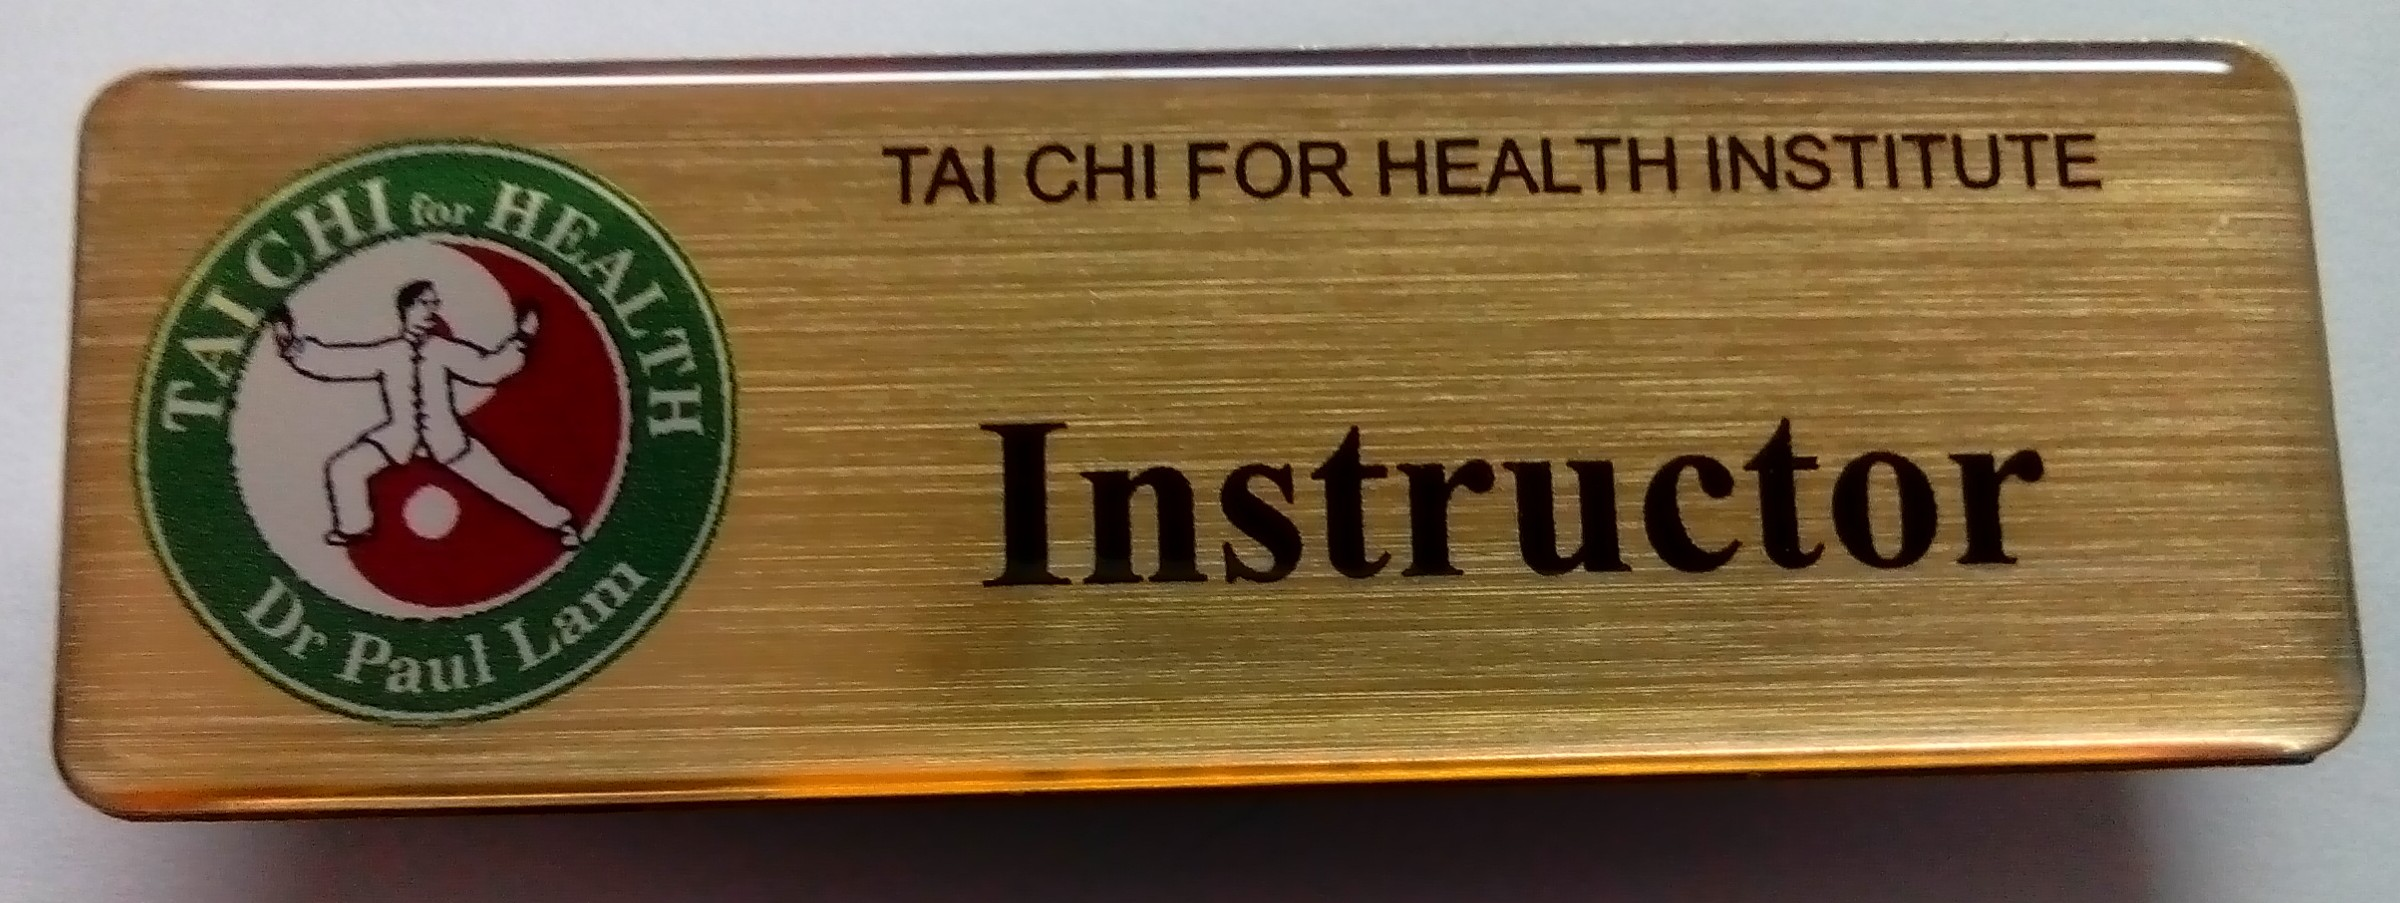 Tai Chi for Health Instructor Badge